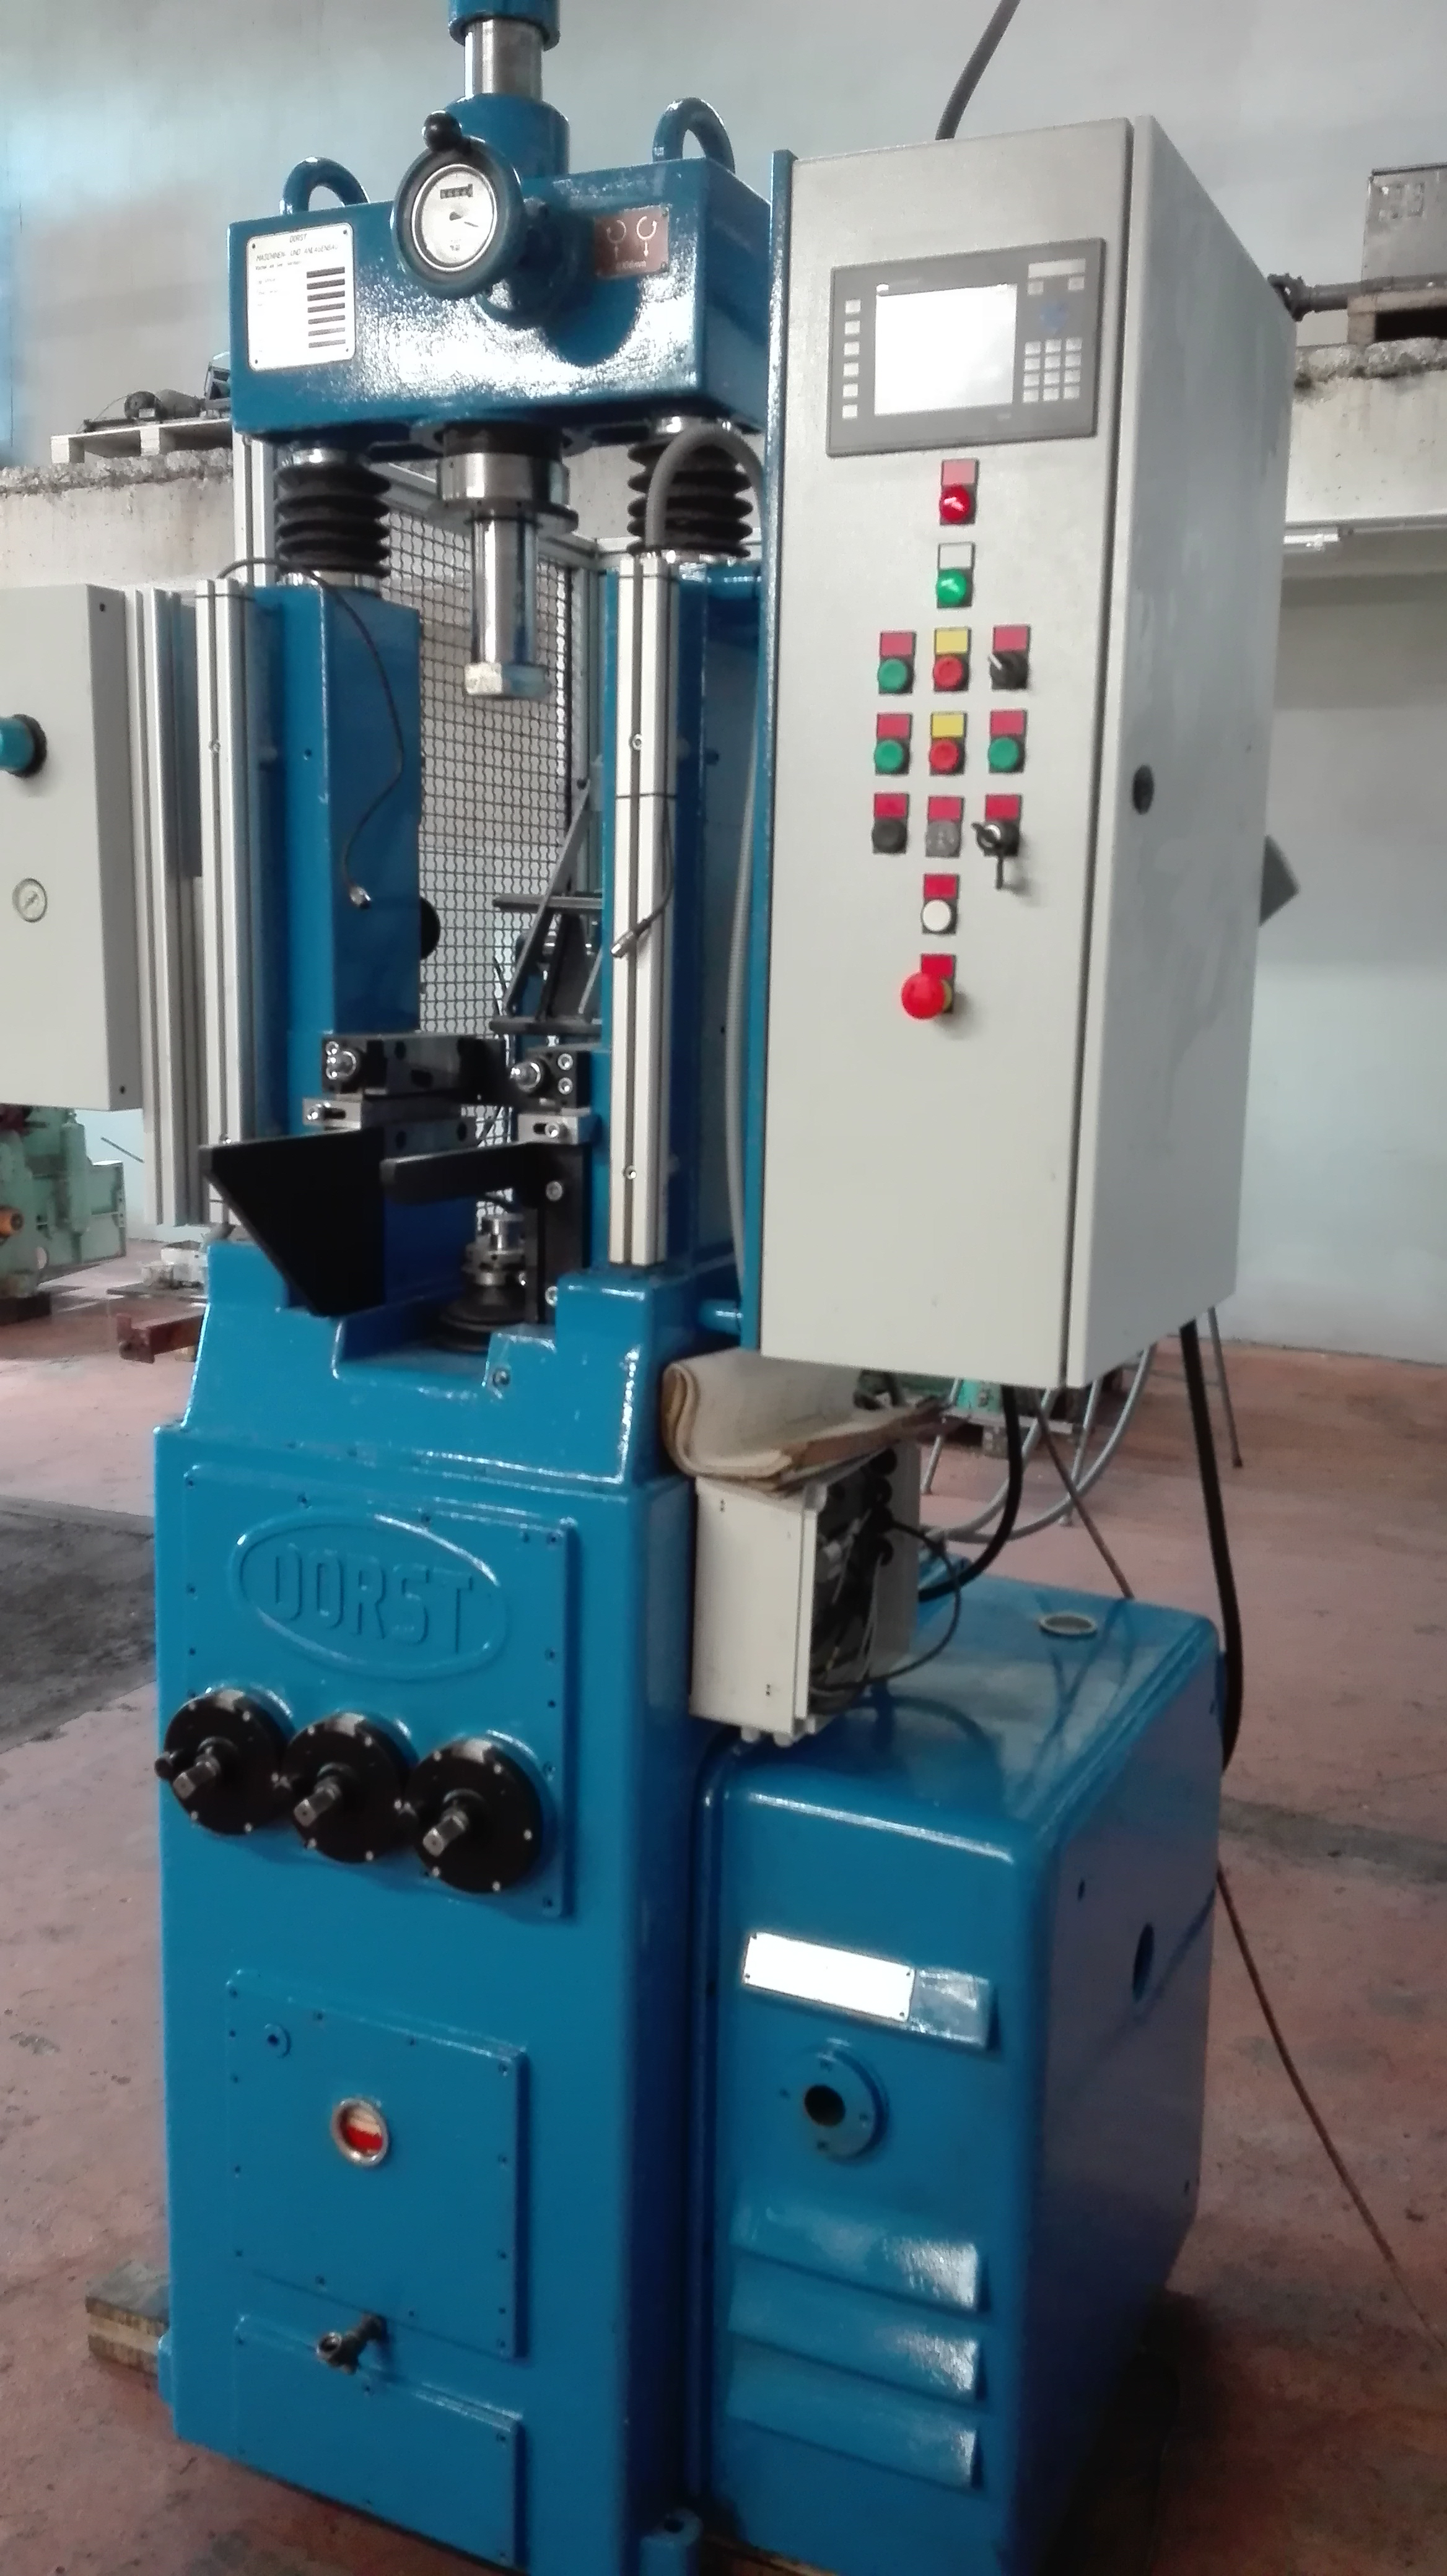 Dorst Tpa 15 Metal Press Exapro